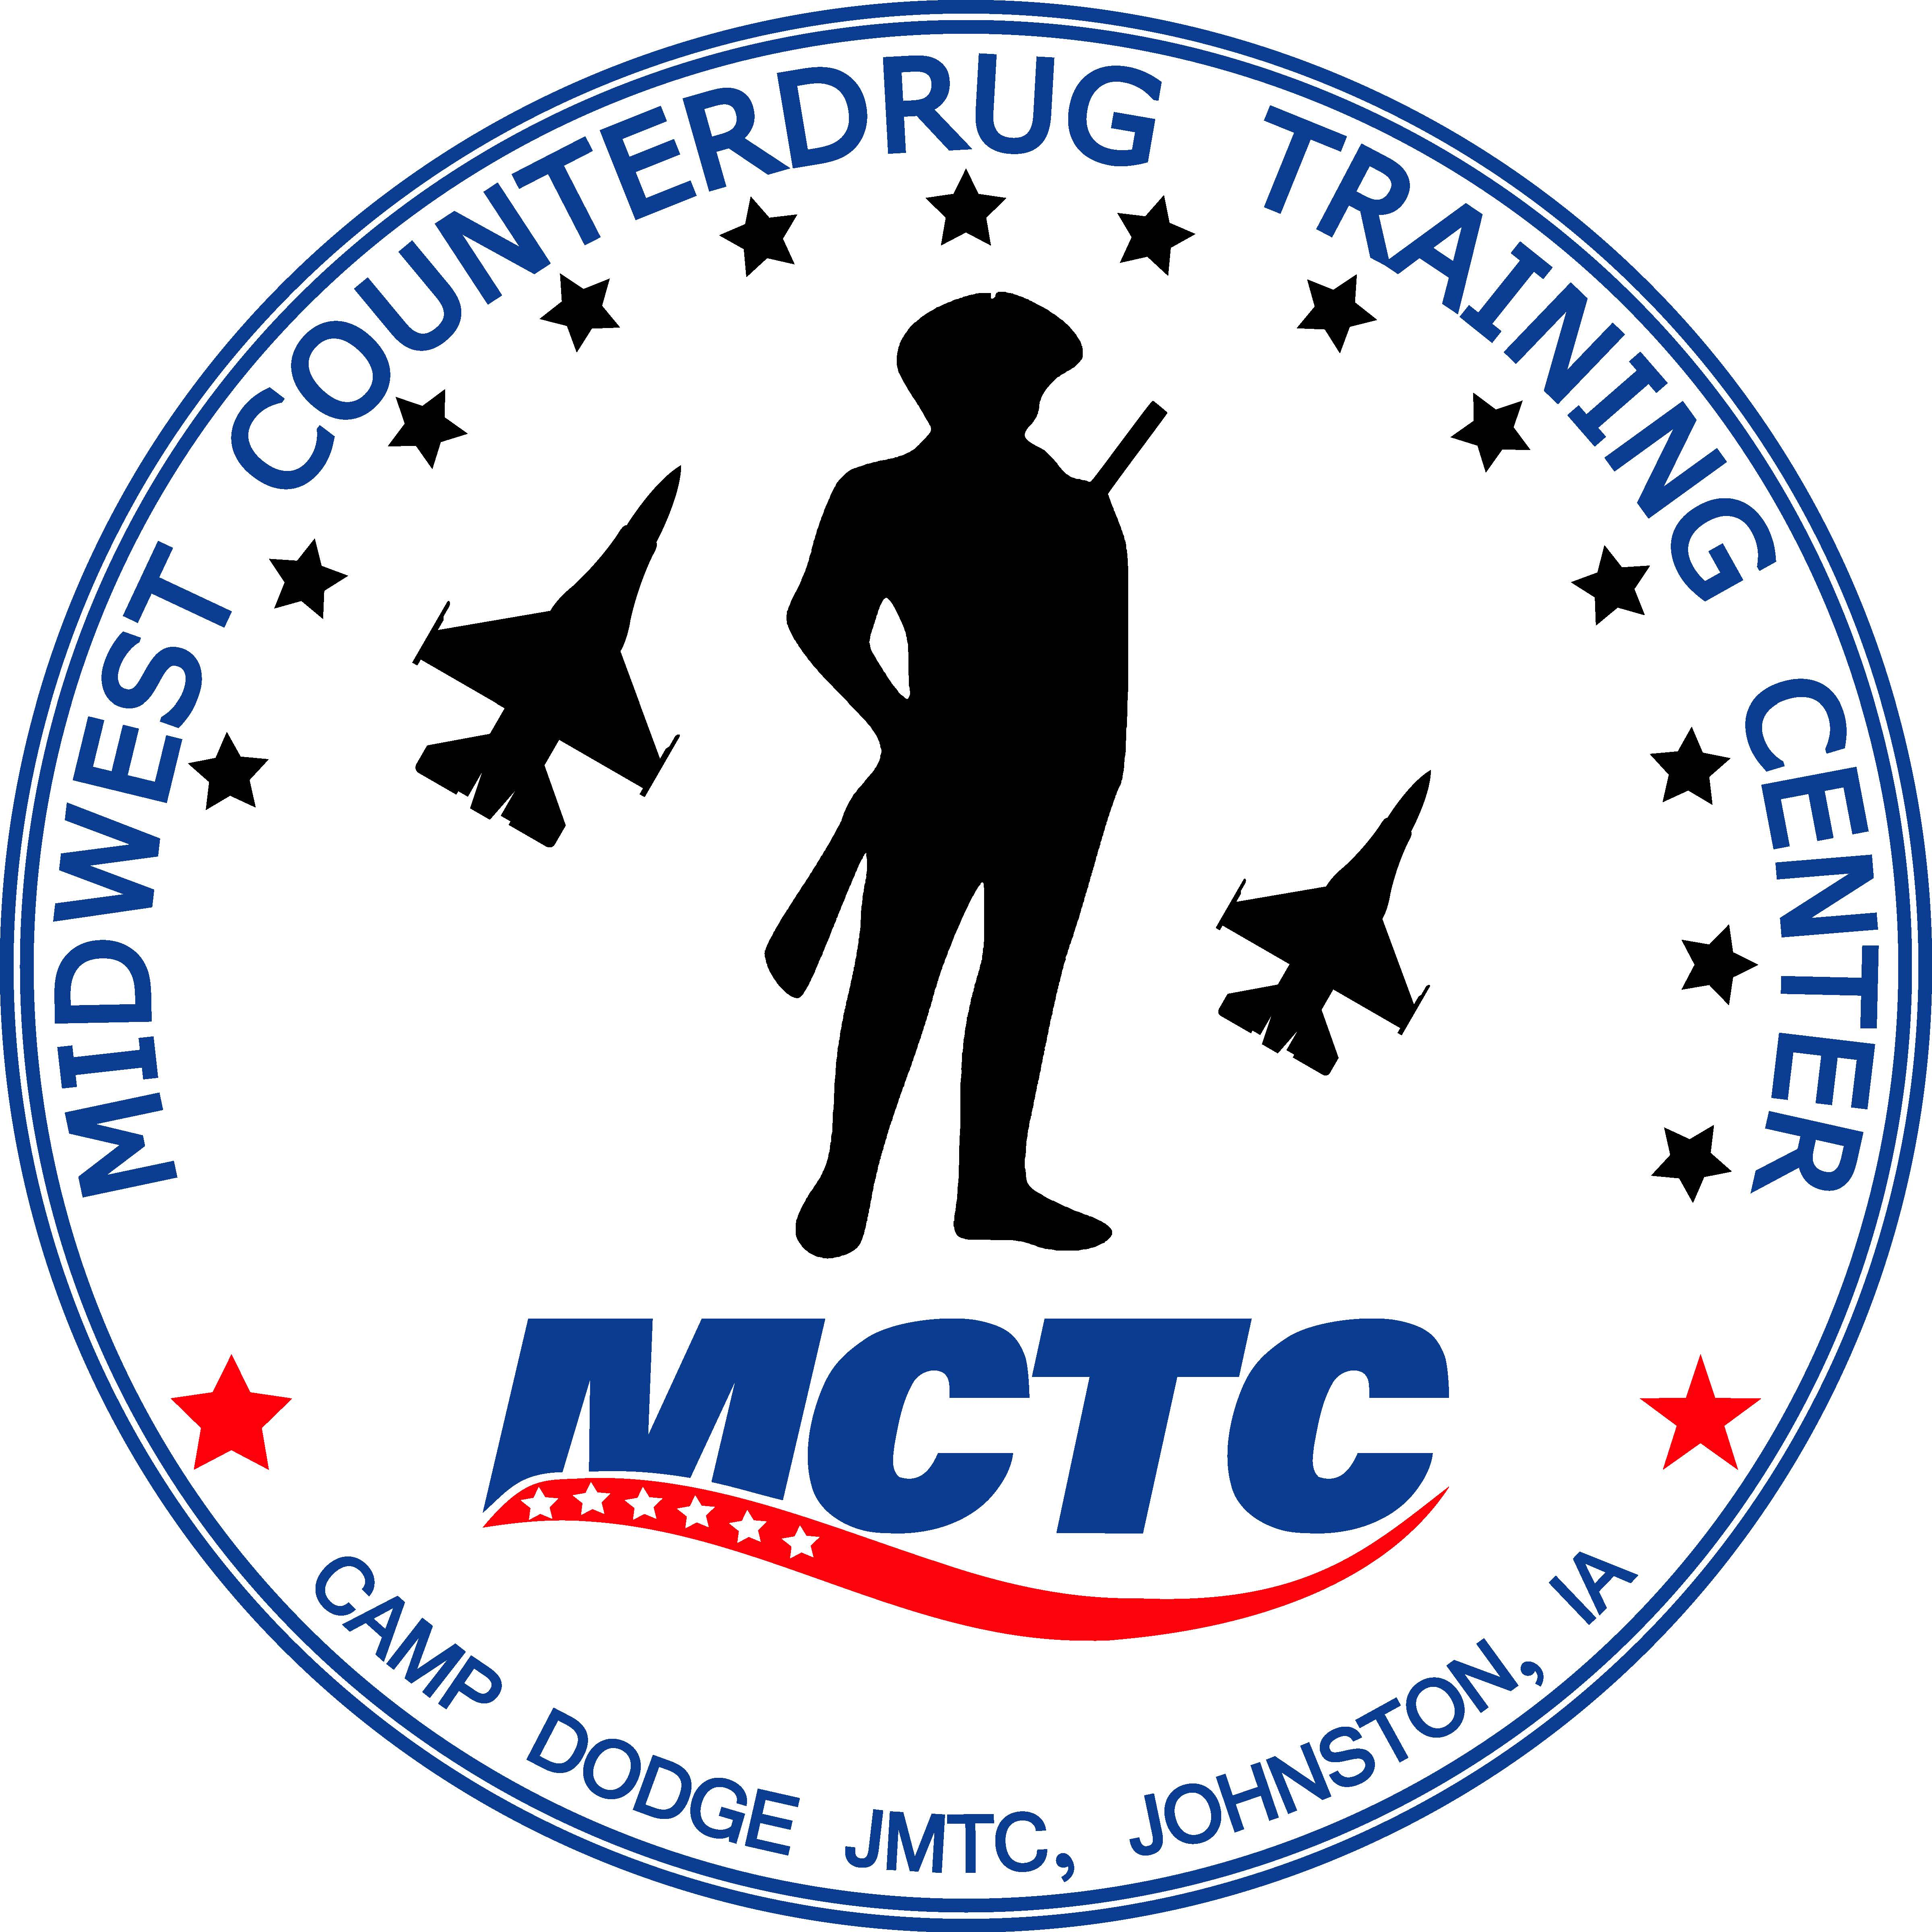 MCTC Revised Logo (Three Color Vector).jpg